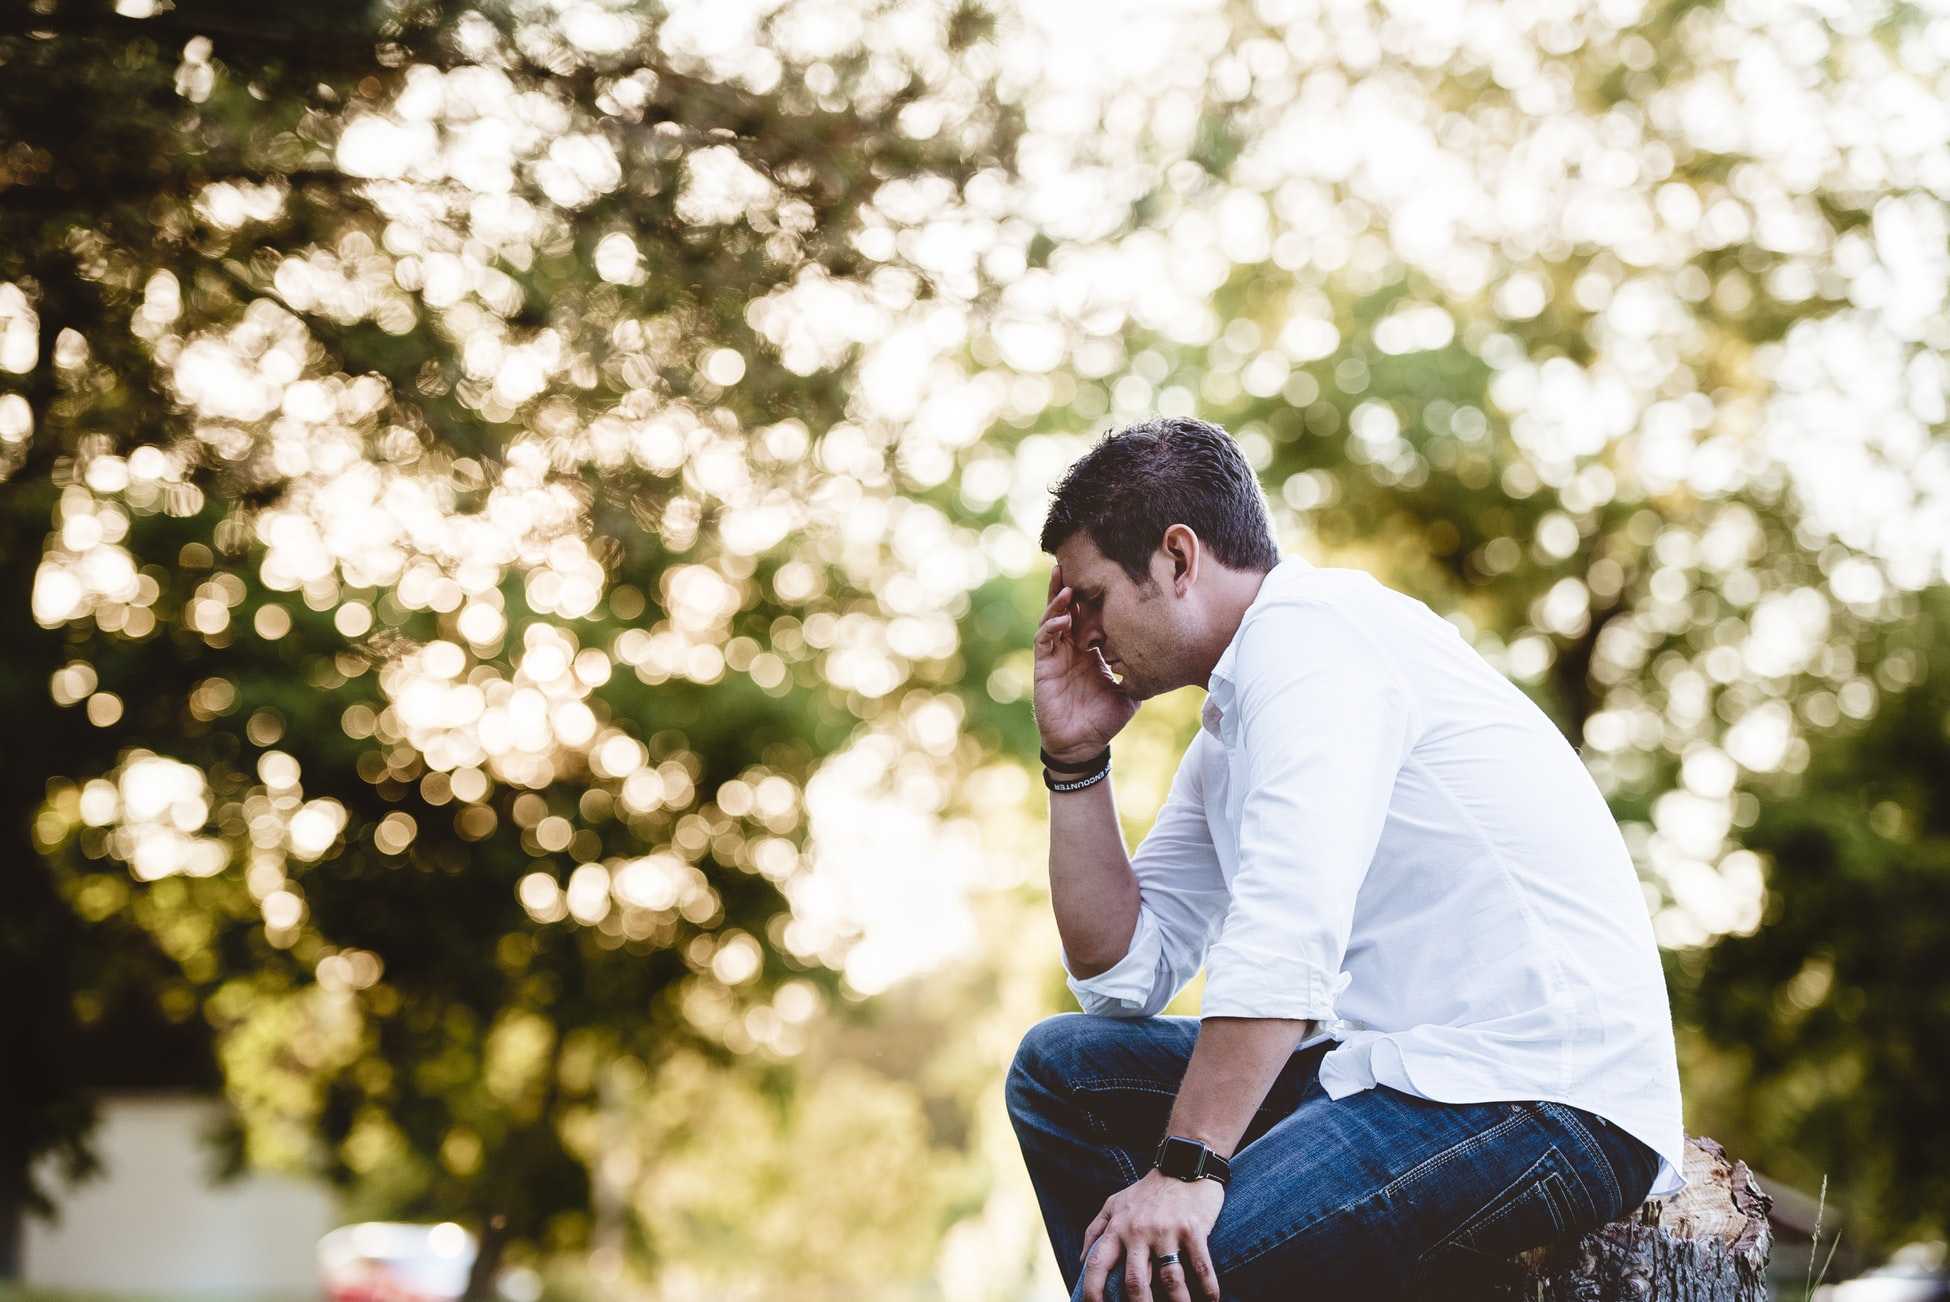 man in a white shirt and jeans looking stressed, moving on, dealing with a breakup